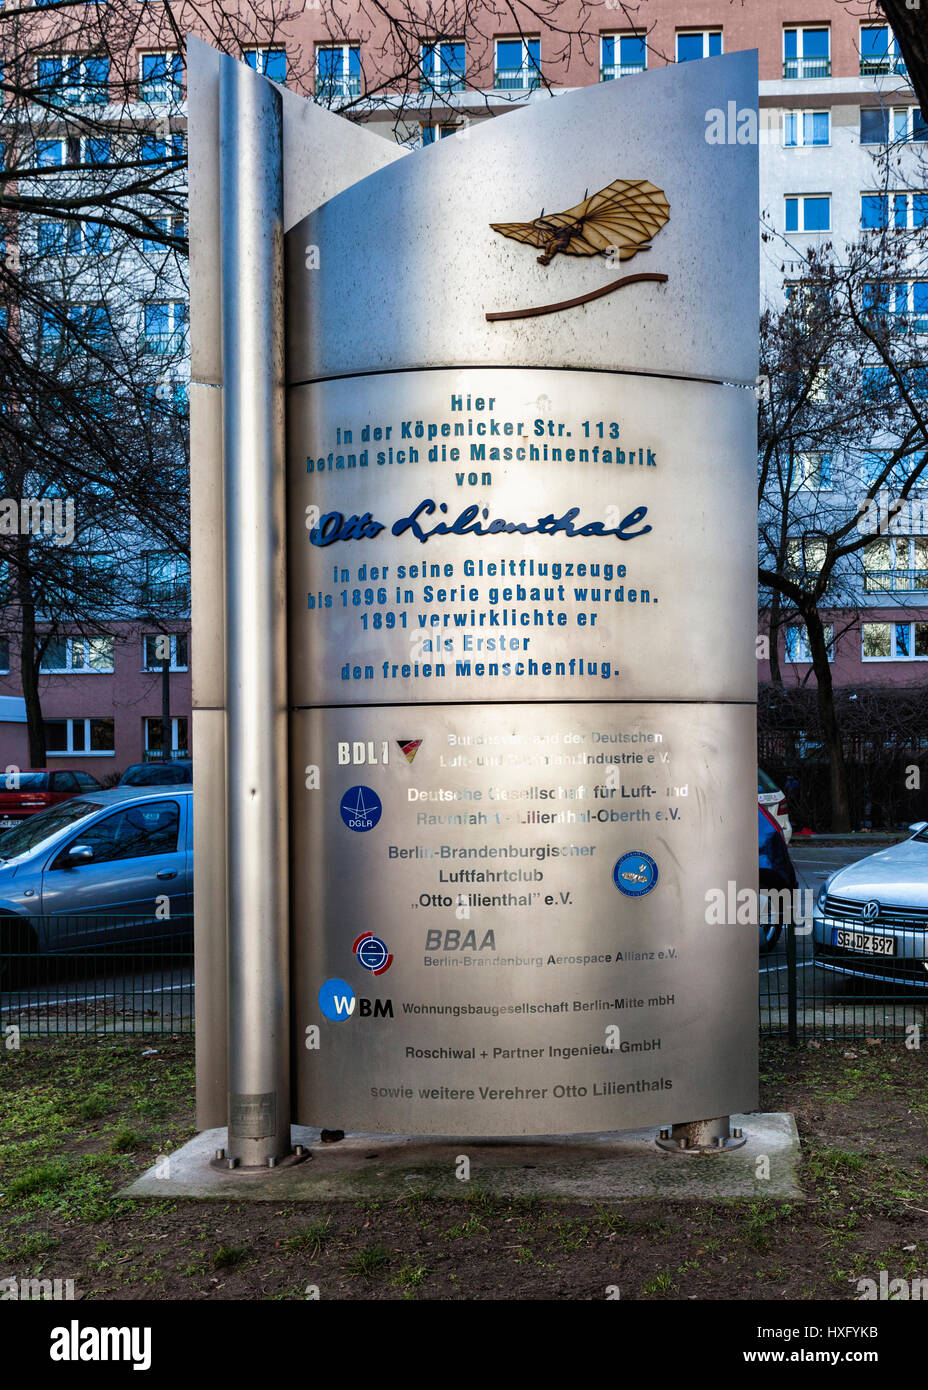 Monument in Berlin (Köpenicker Straße) marks the site of the machine factory of Otto Lilienthal, aviation - Stock Image